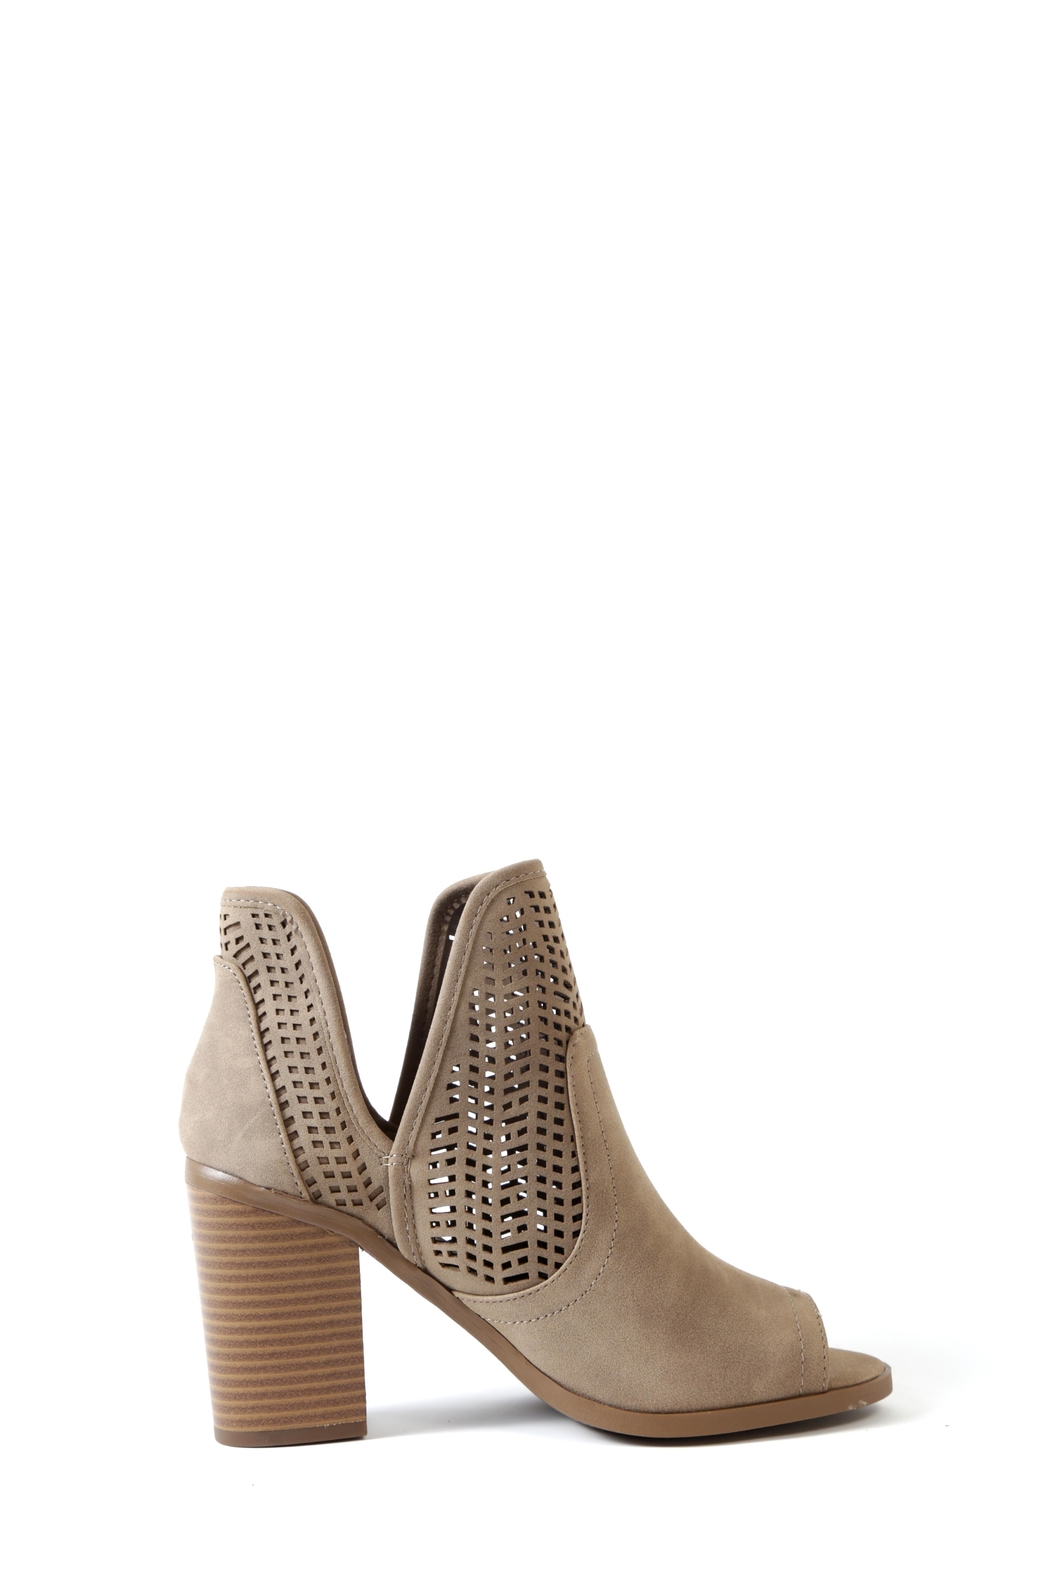 Soda Cathy Peep Toe Bootie - Side Cropped Image